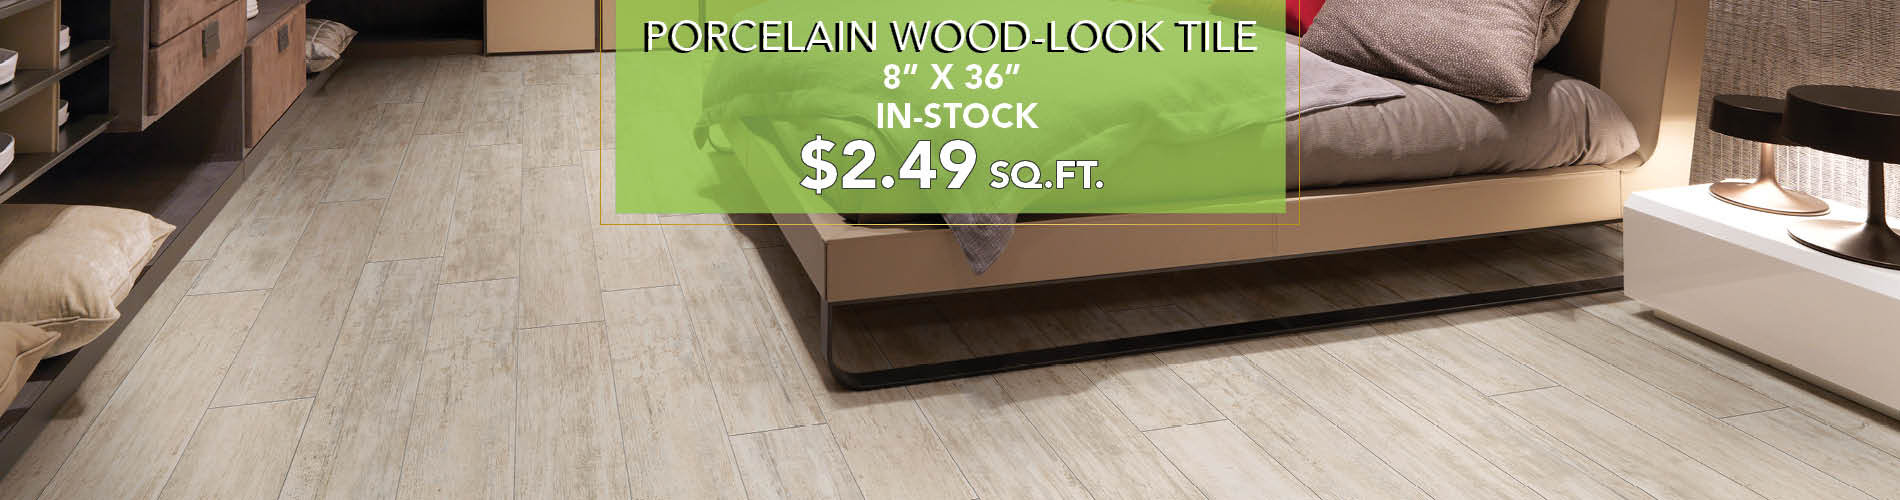 Porcelqin wood-look tile $2.49 sq.ft. this month at Witt Flooring.